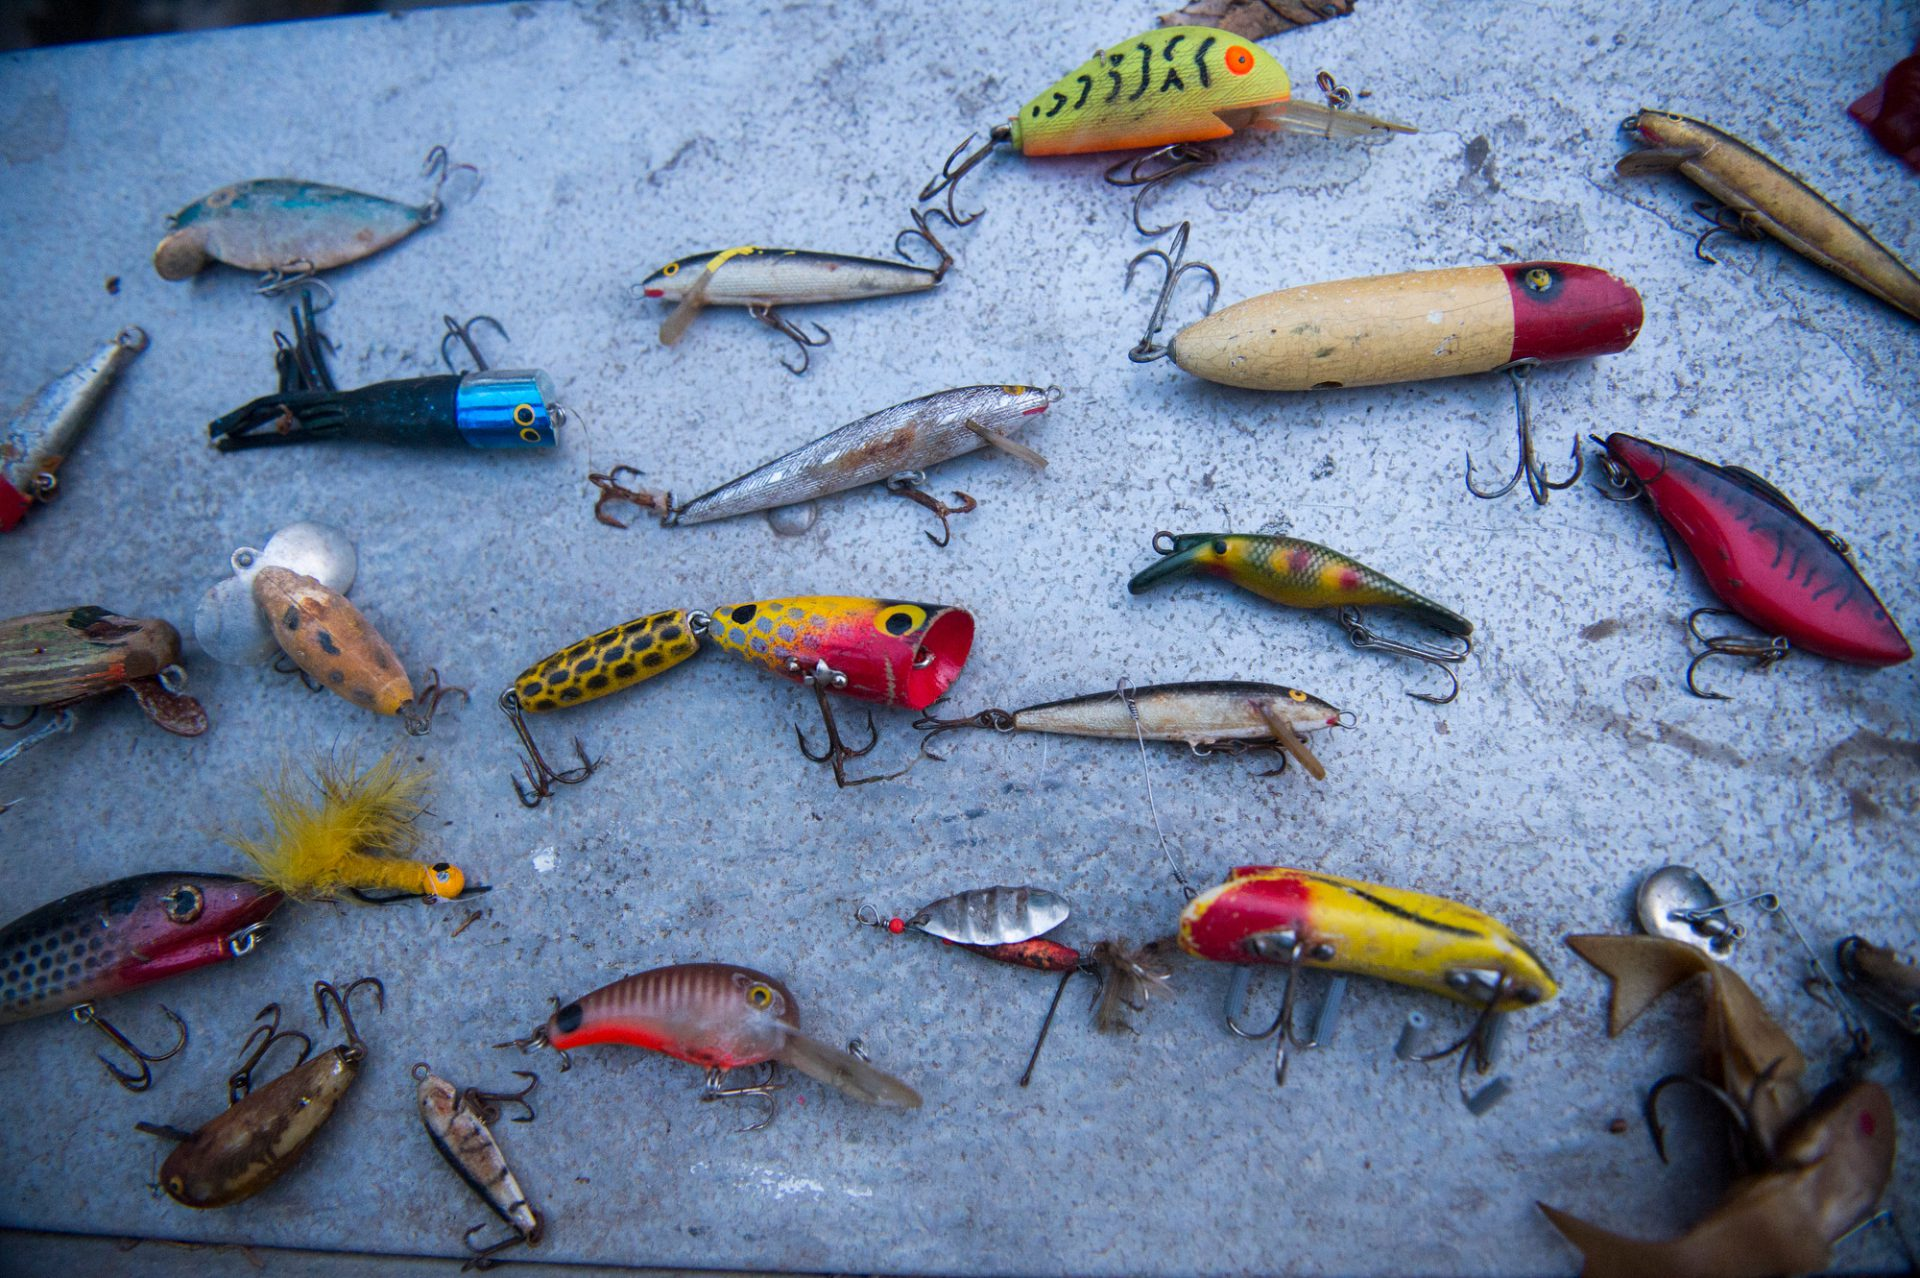 Photo: Fishing lures.